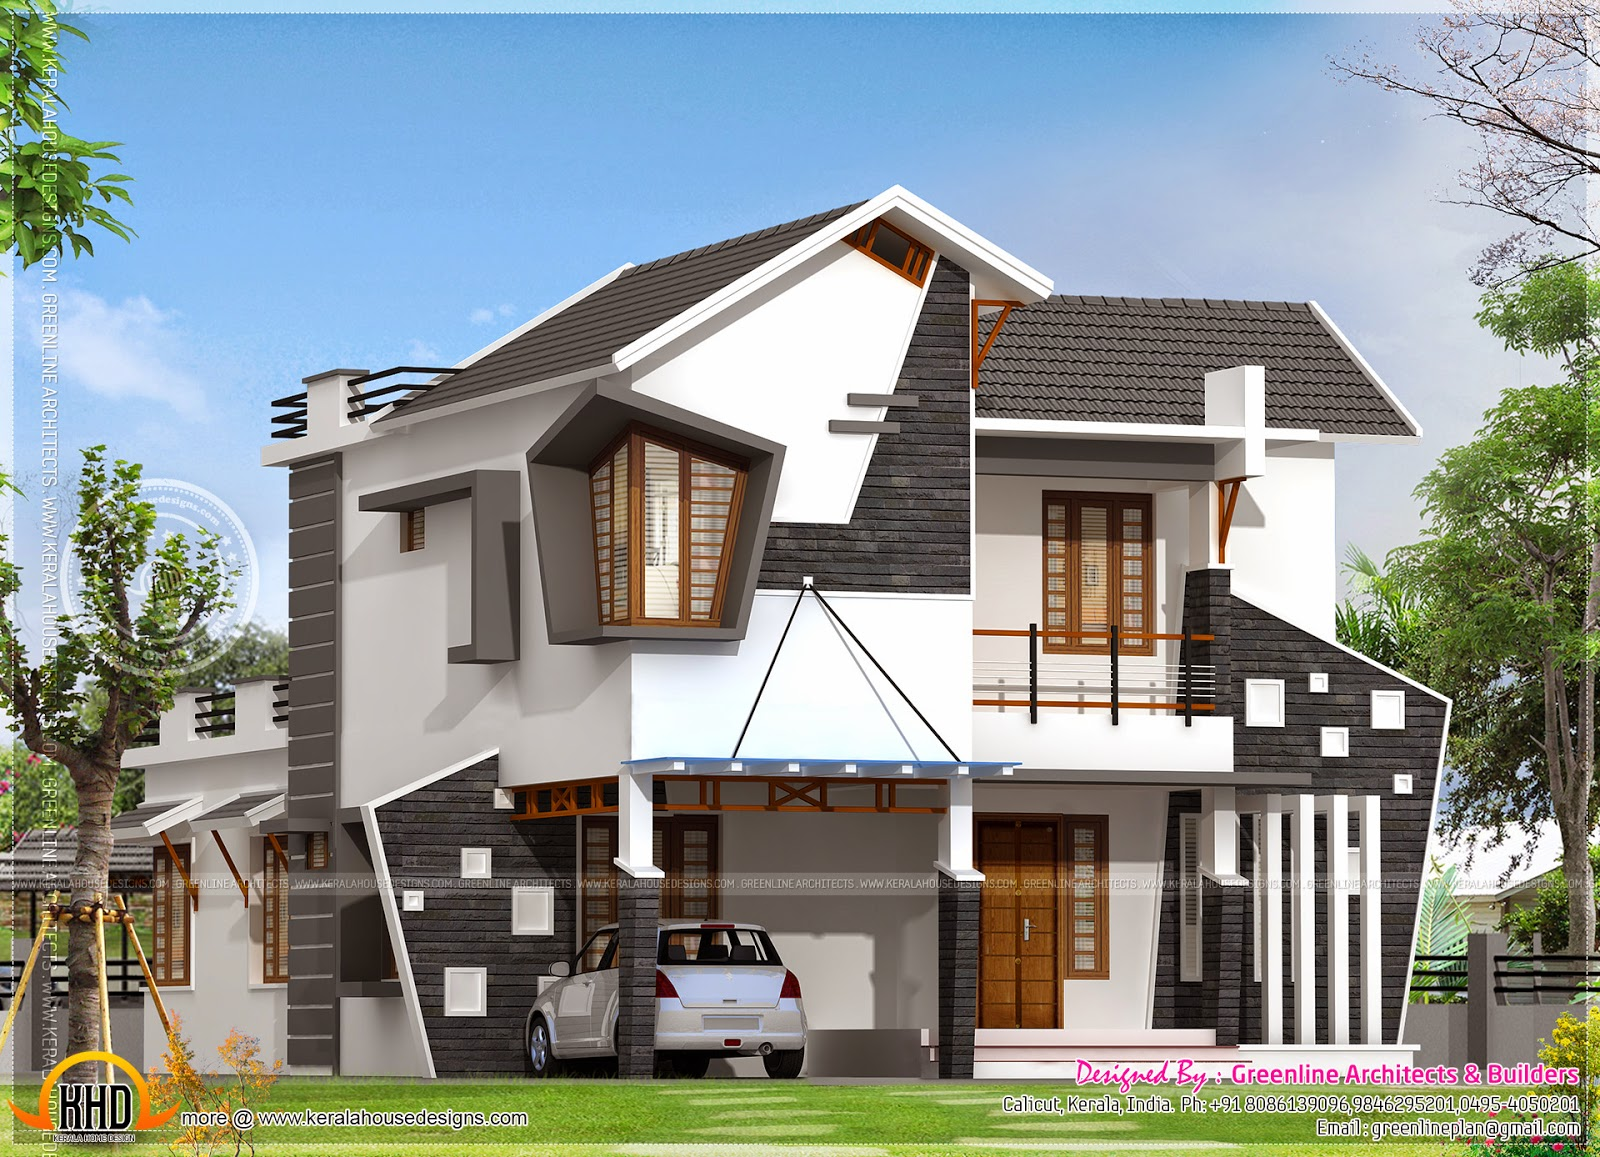 Unique house exterior in 2154 square feet kerala home design and floor plans - Unique house design ...